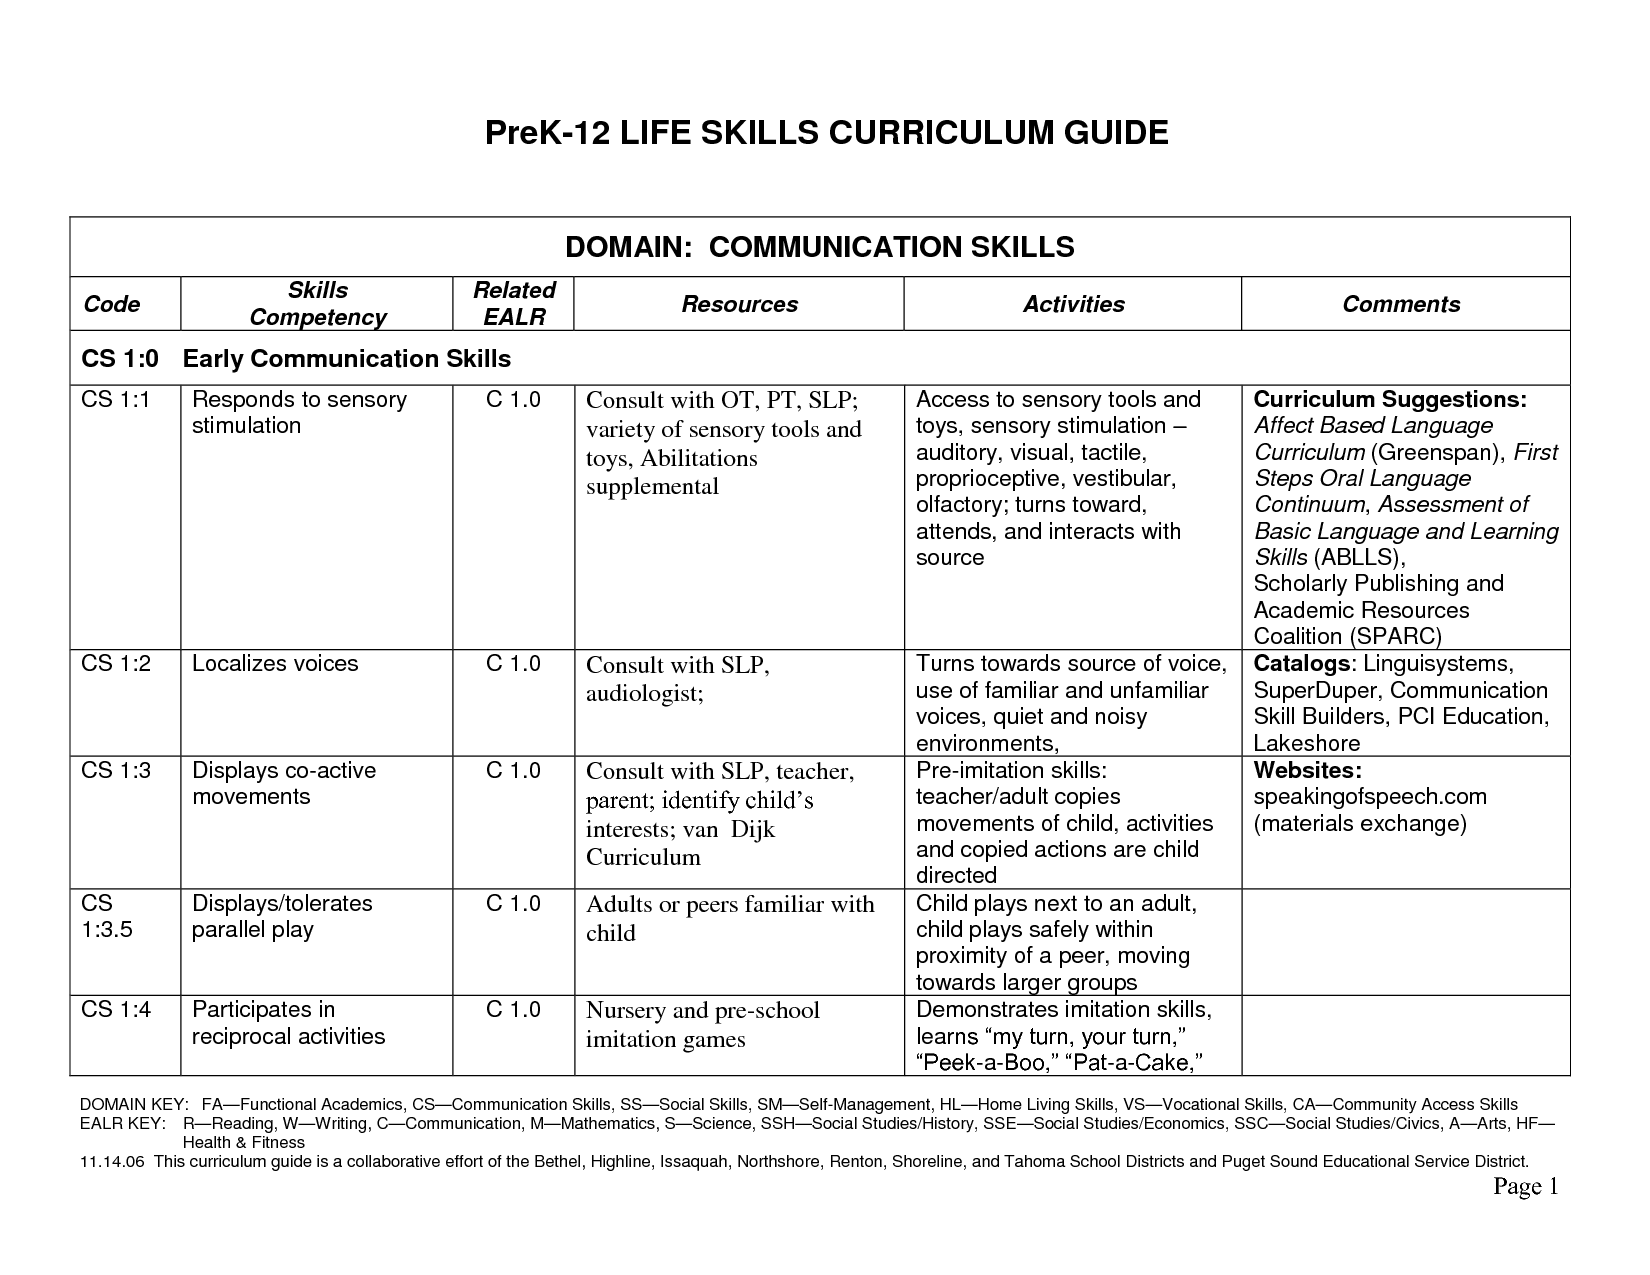 Early Communication Skills Life Skills Curriculum Guide